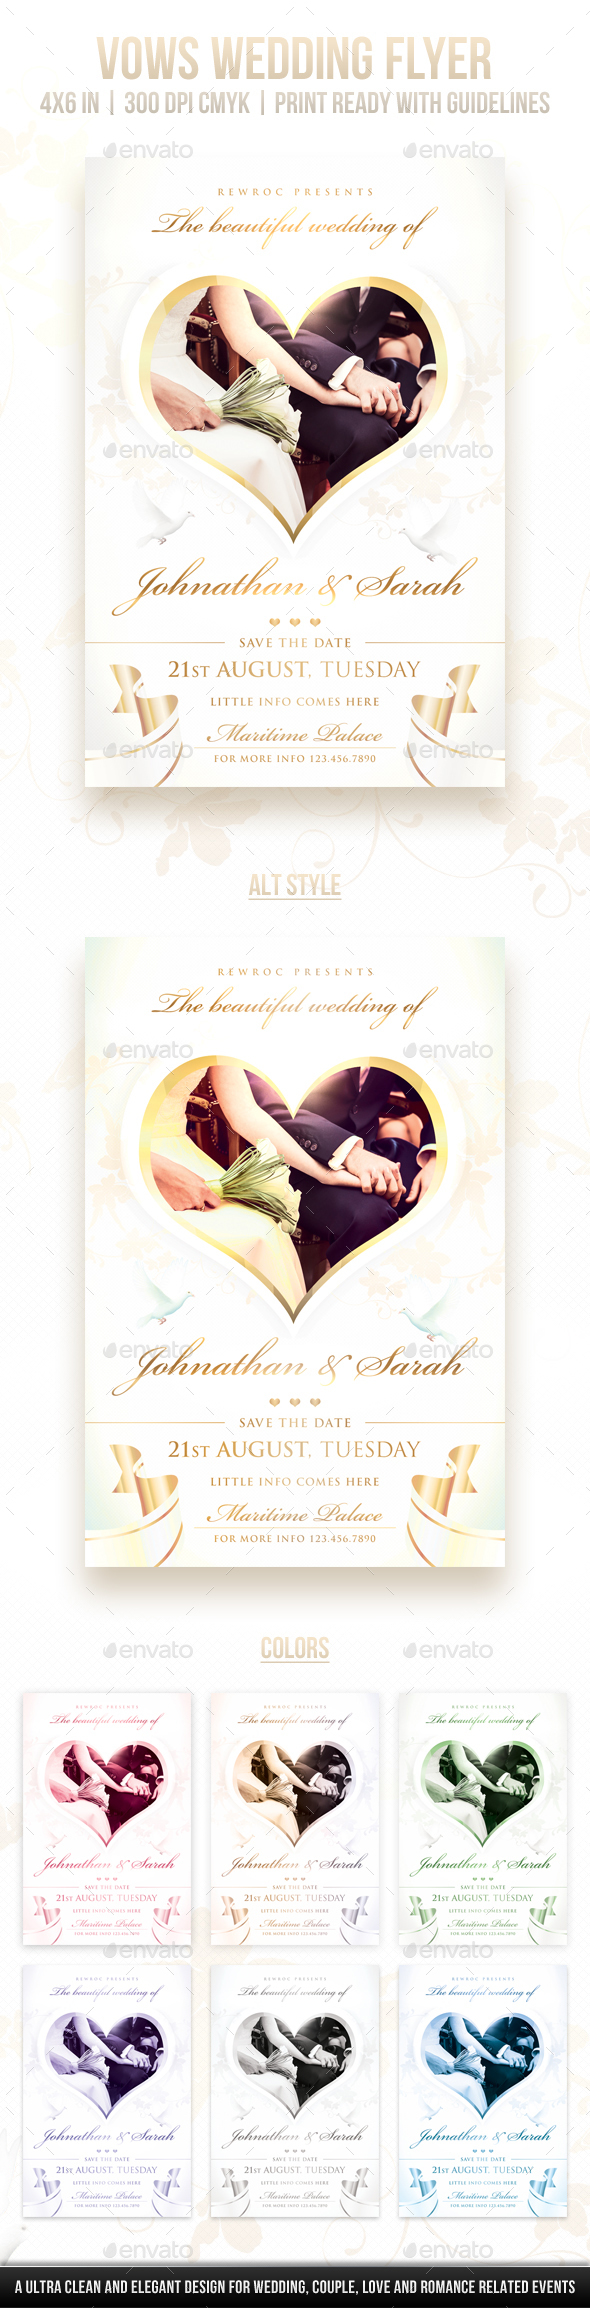 Vows Wedding Flyer - Miscellaneous Events